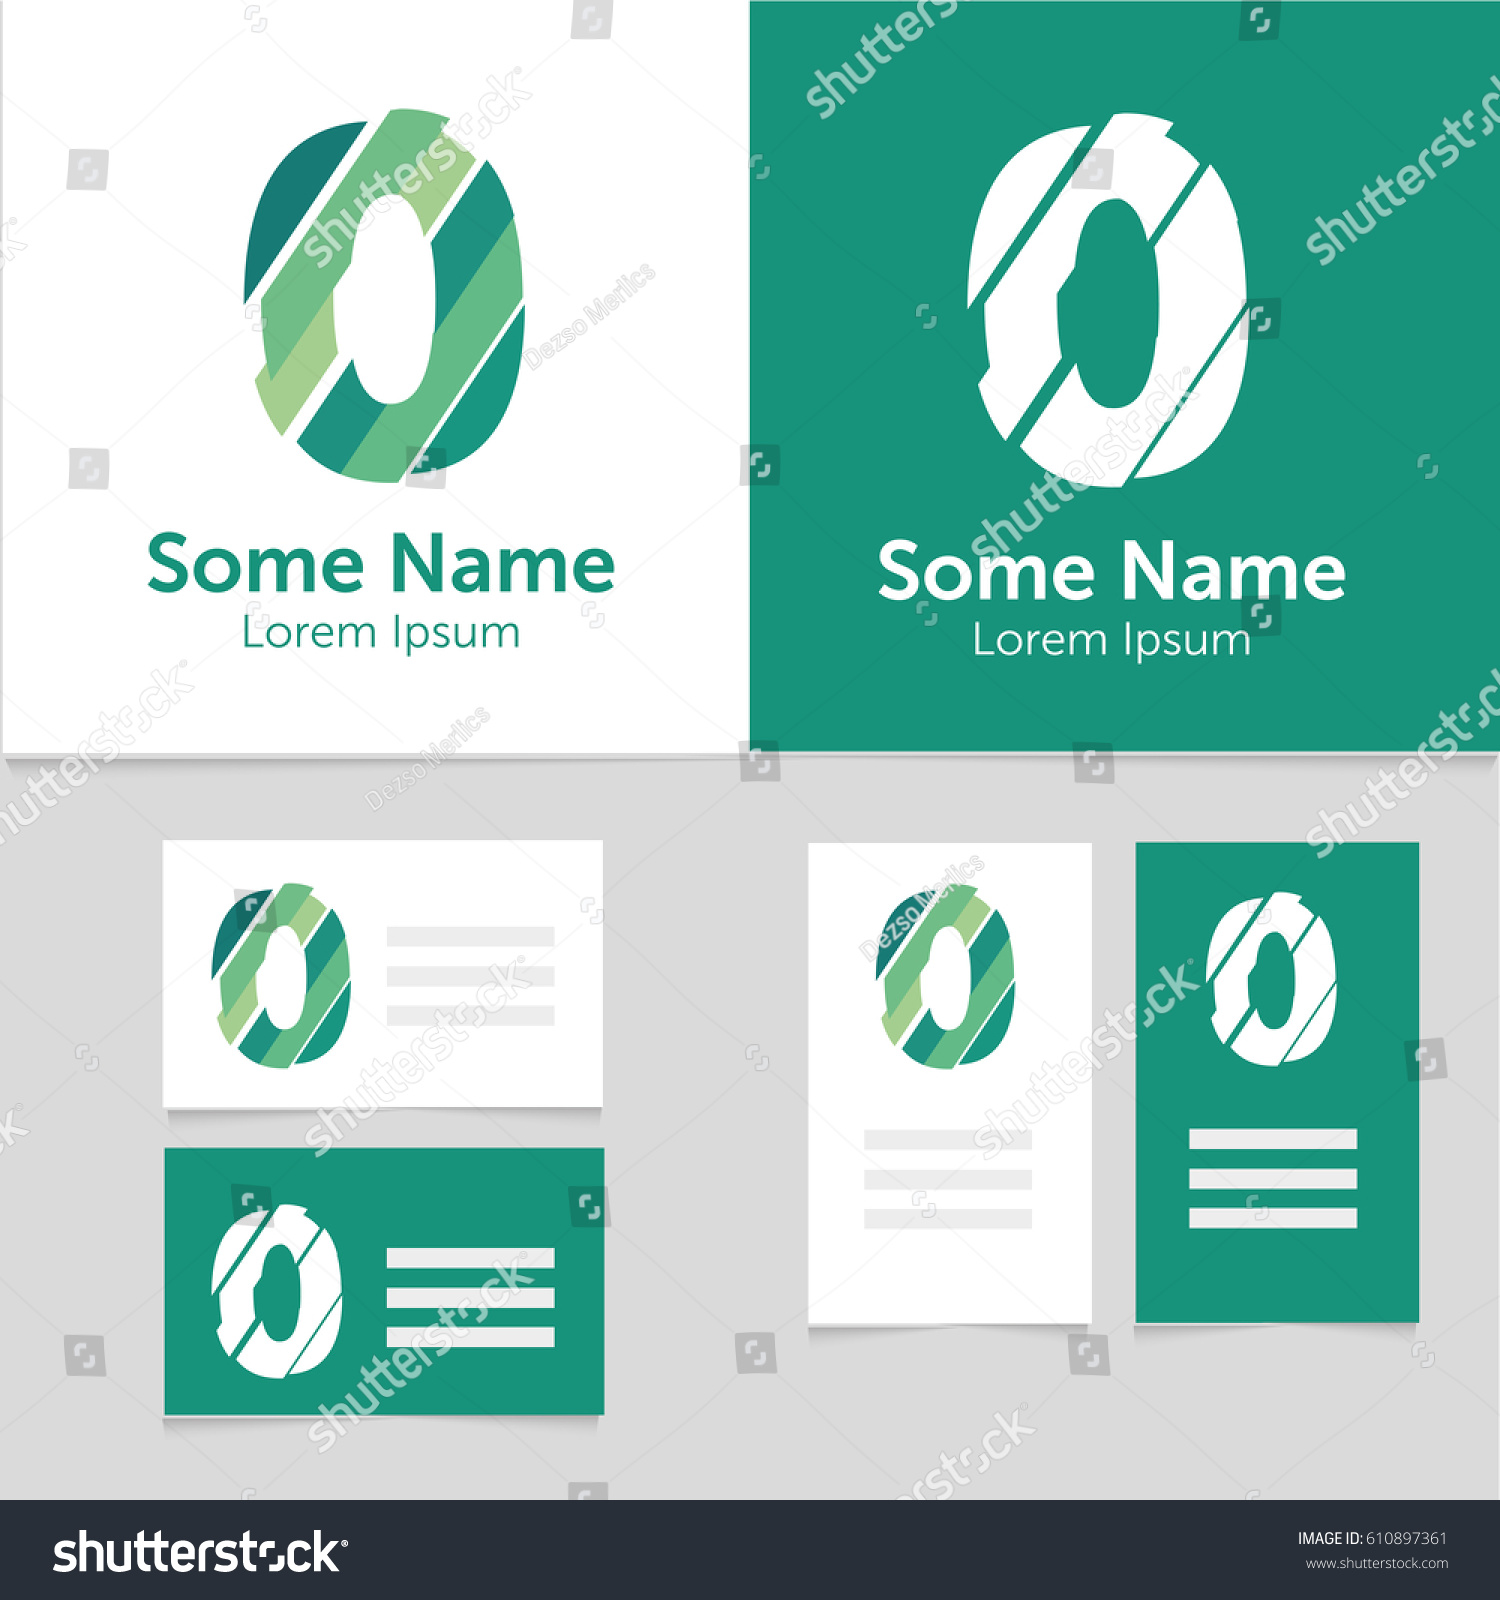 Business card number images free business cards usc marshall business cards image collections free business cards business card number images free business cards magicingreecefo Gallery